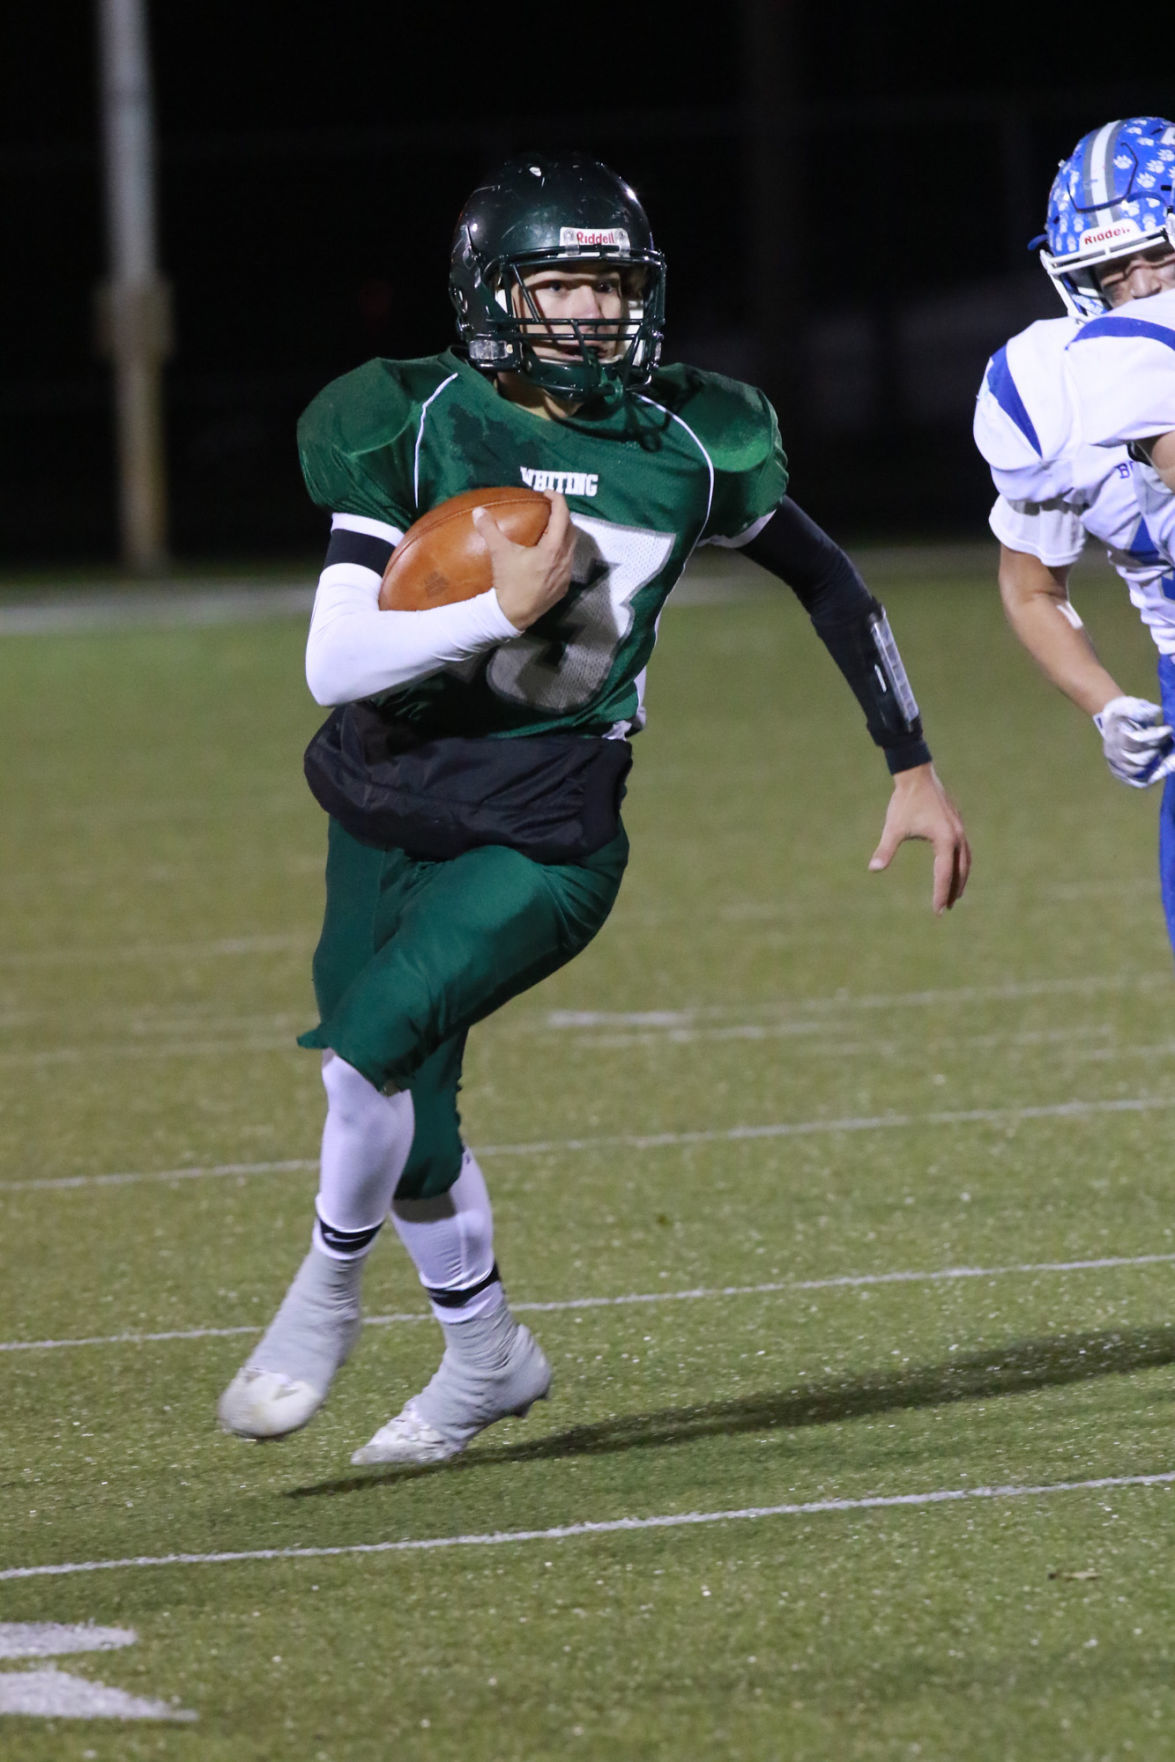 Gallery: Class 2A Football - Boone Grove at Whiting